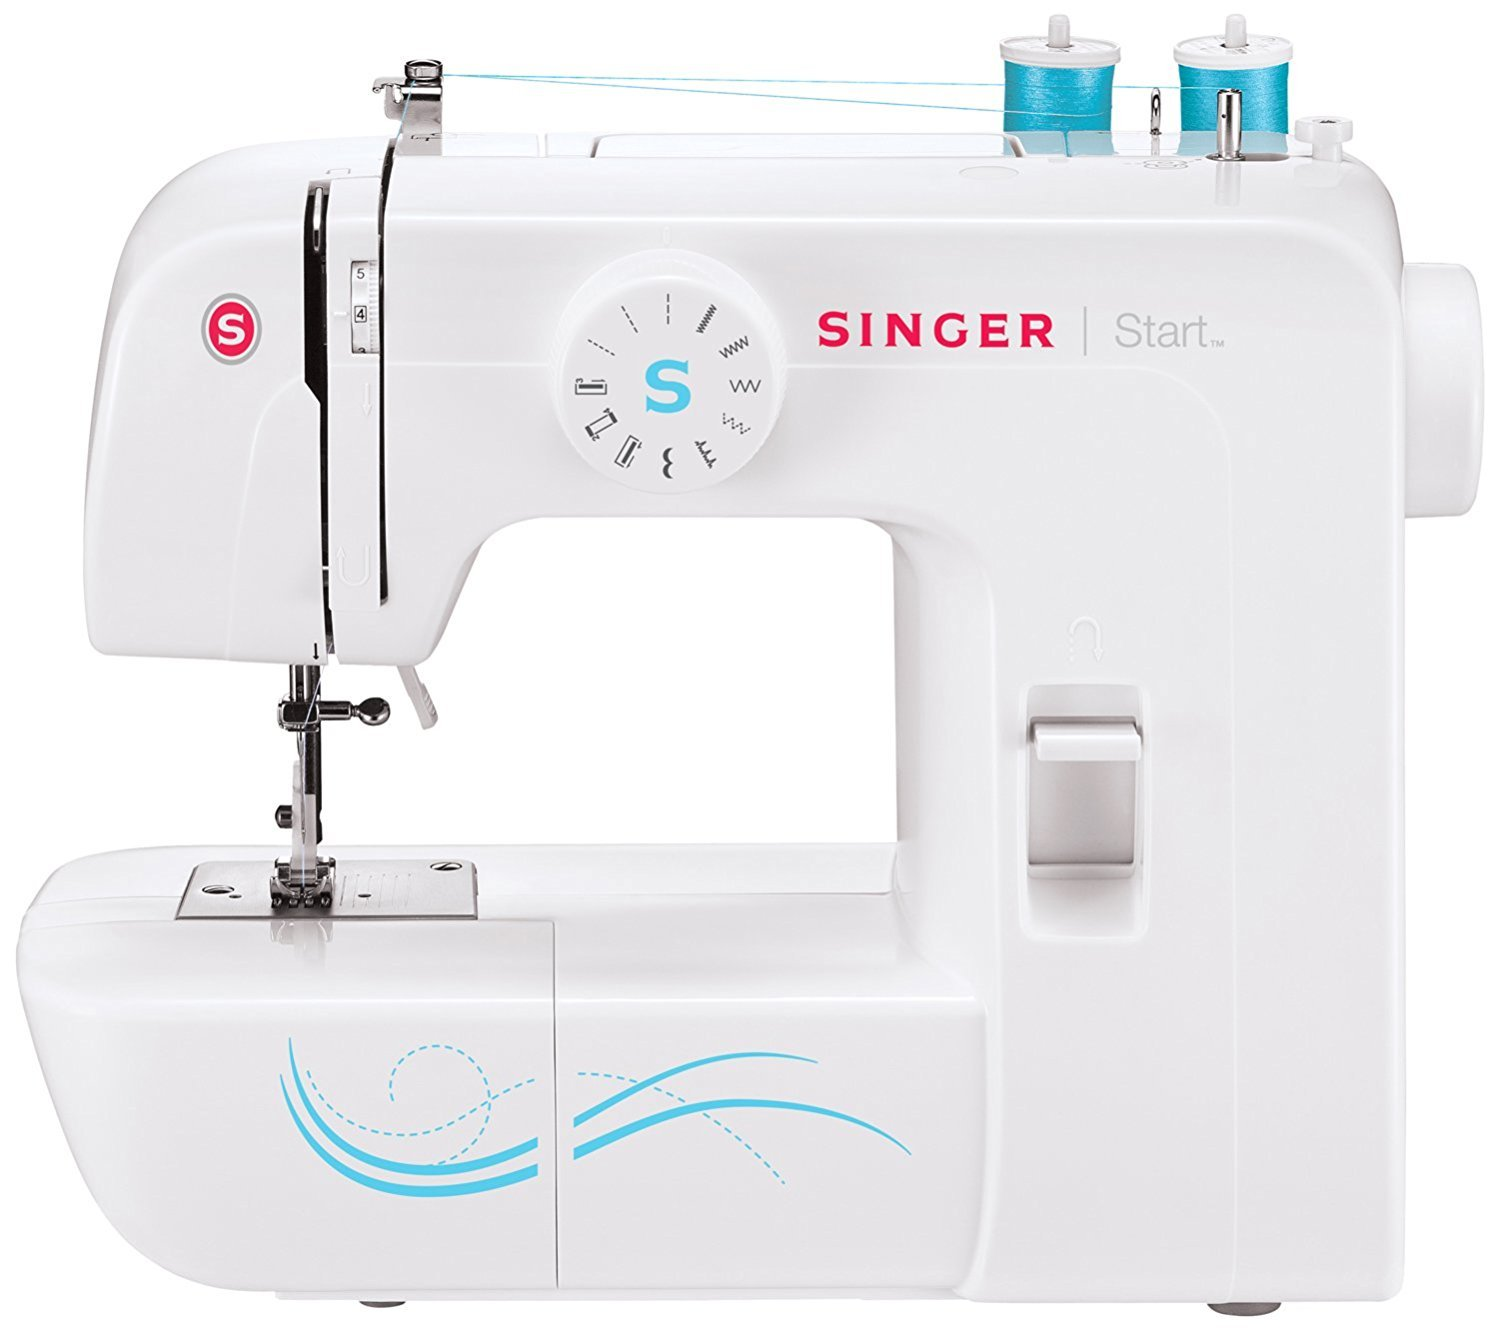 Top 6 Best Portable Sewing Machine (2020 Reviews & Buying Guide) 2